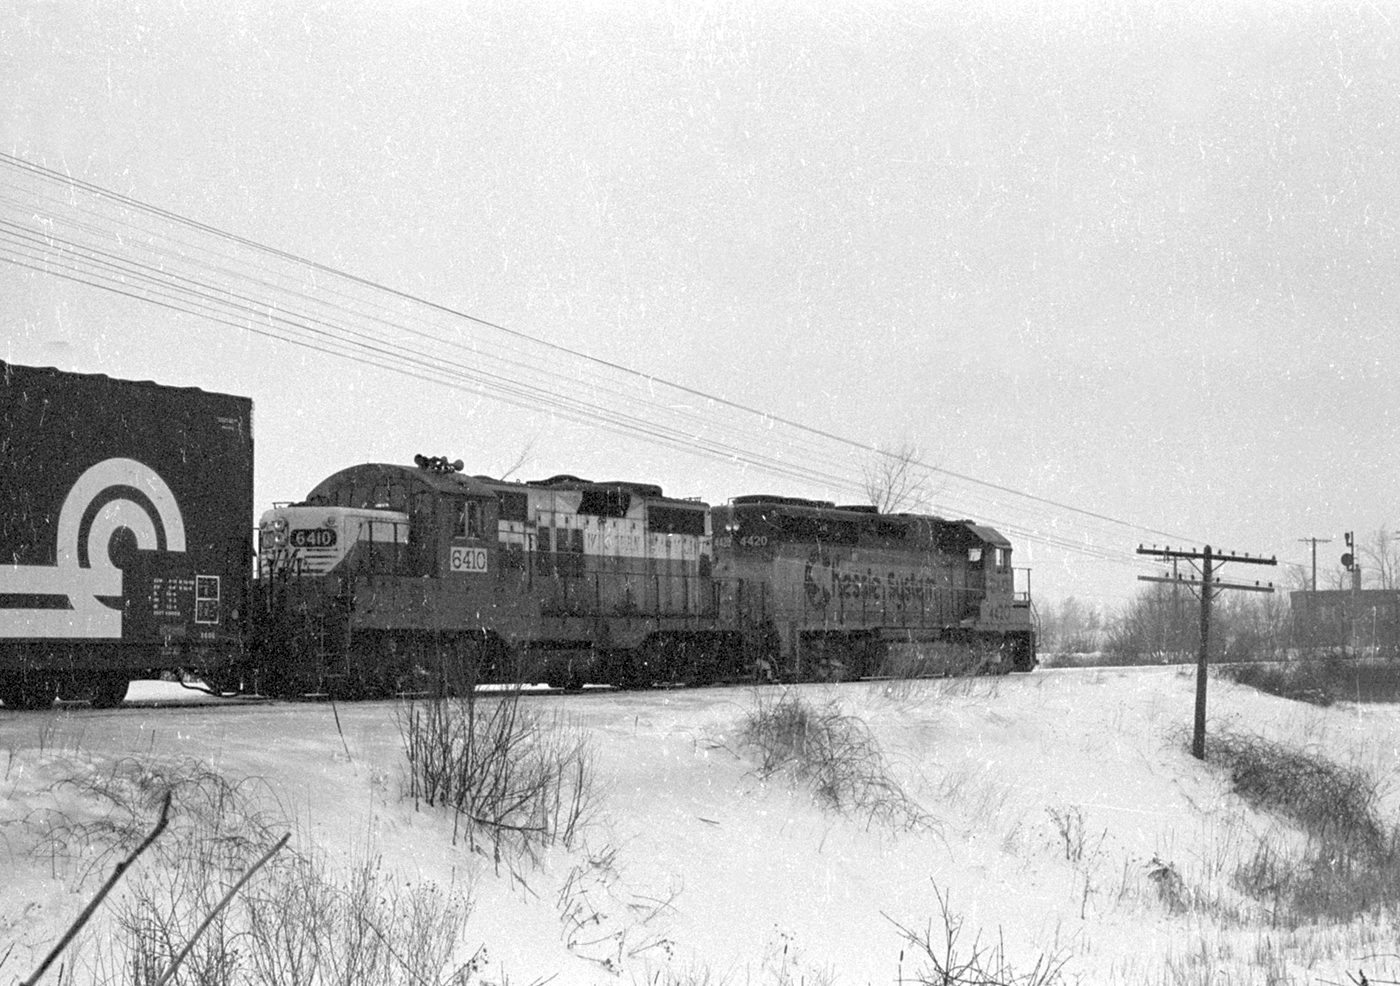 Northbound Chessie train near Alexis